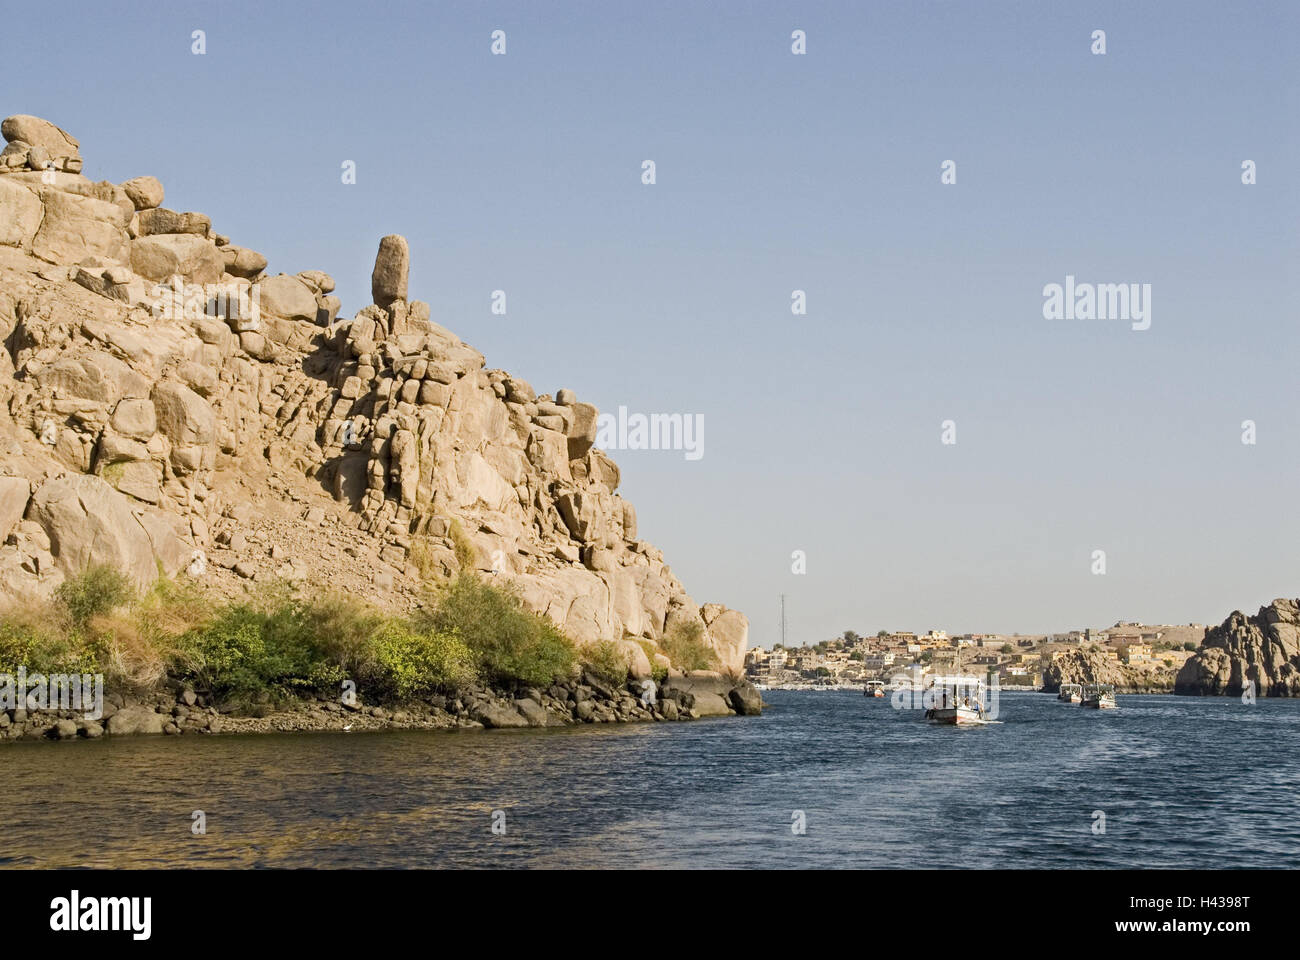 Egypt, Aswan, cataract, local view, the Nile, island Philae, Upper Egypt, scenery, mountains, rock, river, waters, - Stock Image